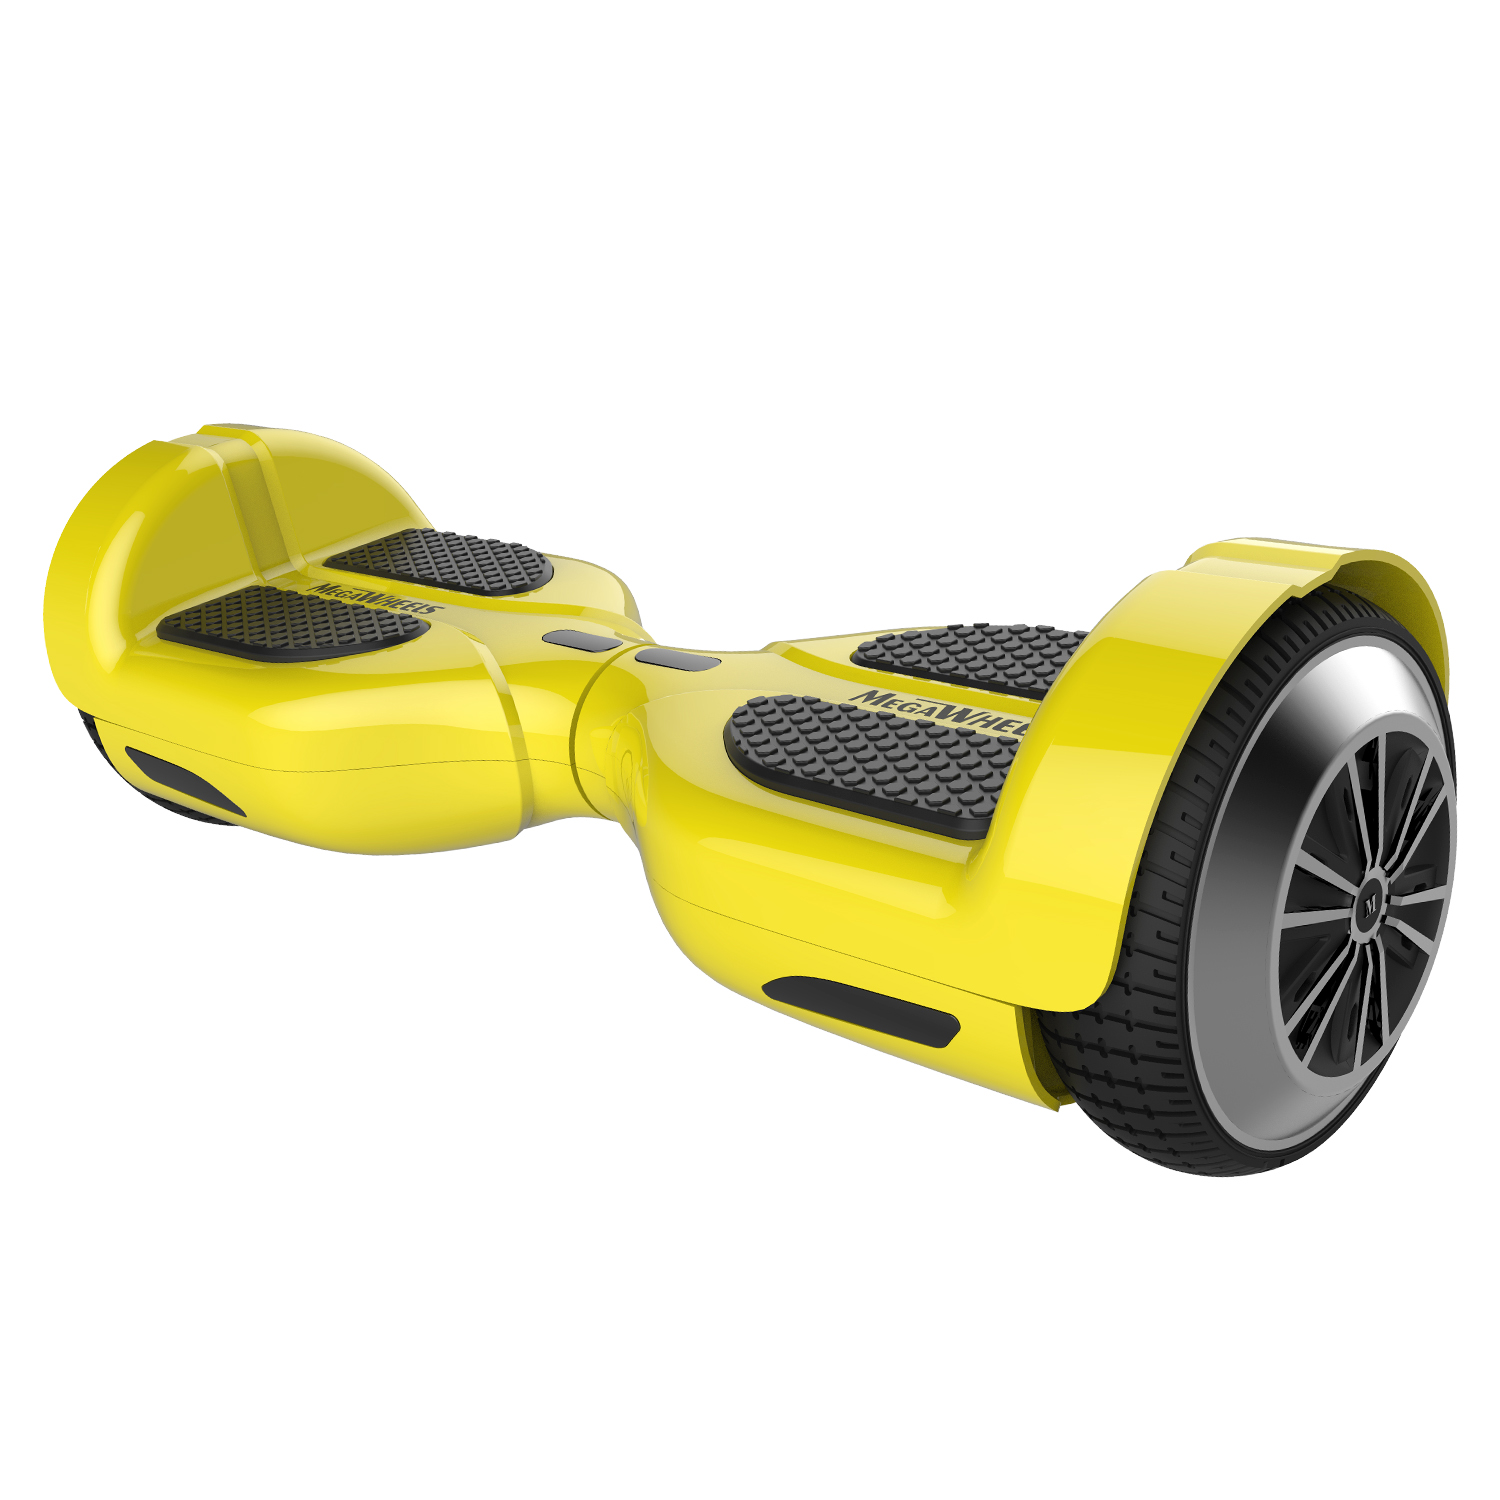 Details About 6 5 Bluetooth Self Balancing Scooter Yellow 2wheels Electric Smart Hover Board